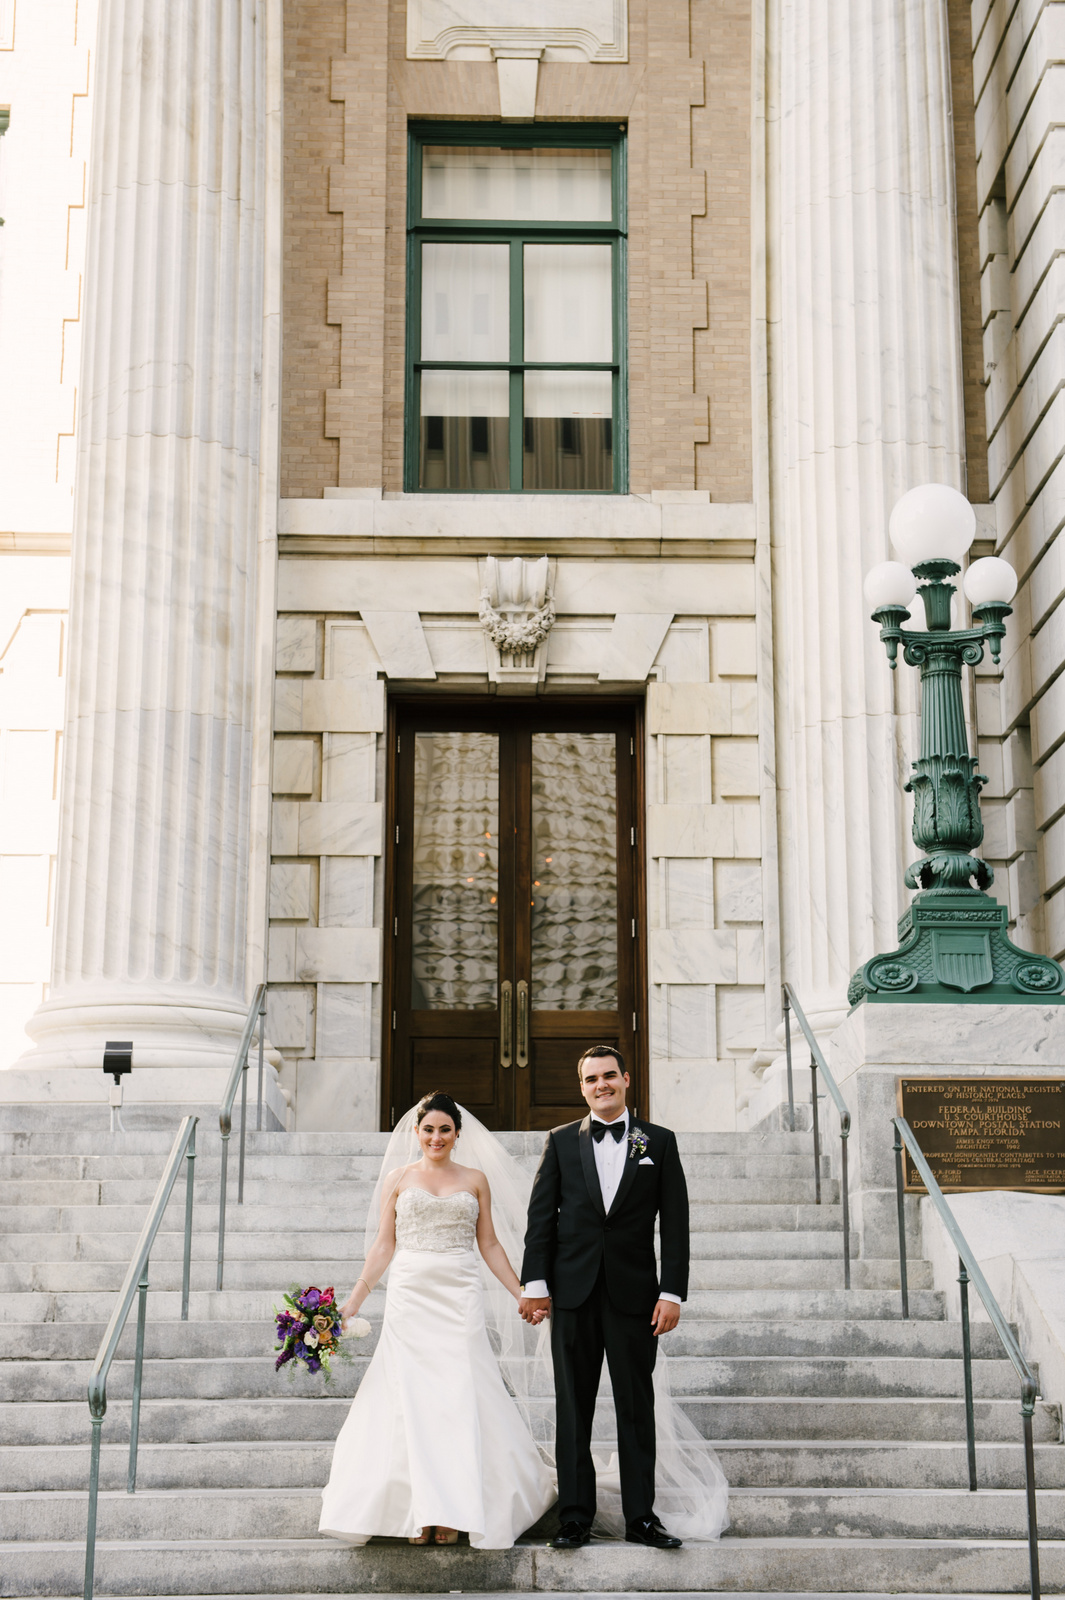 Modern Wedding in Downtown Tampa - Tracie Domino Events